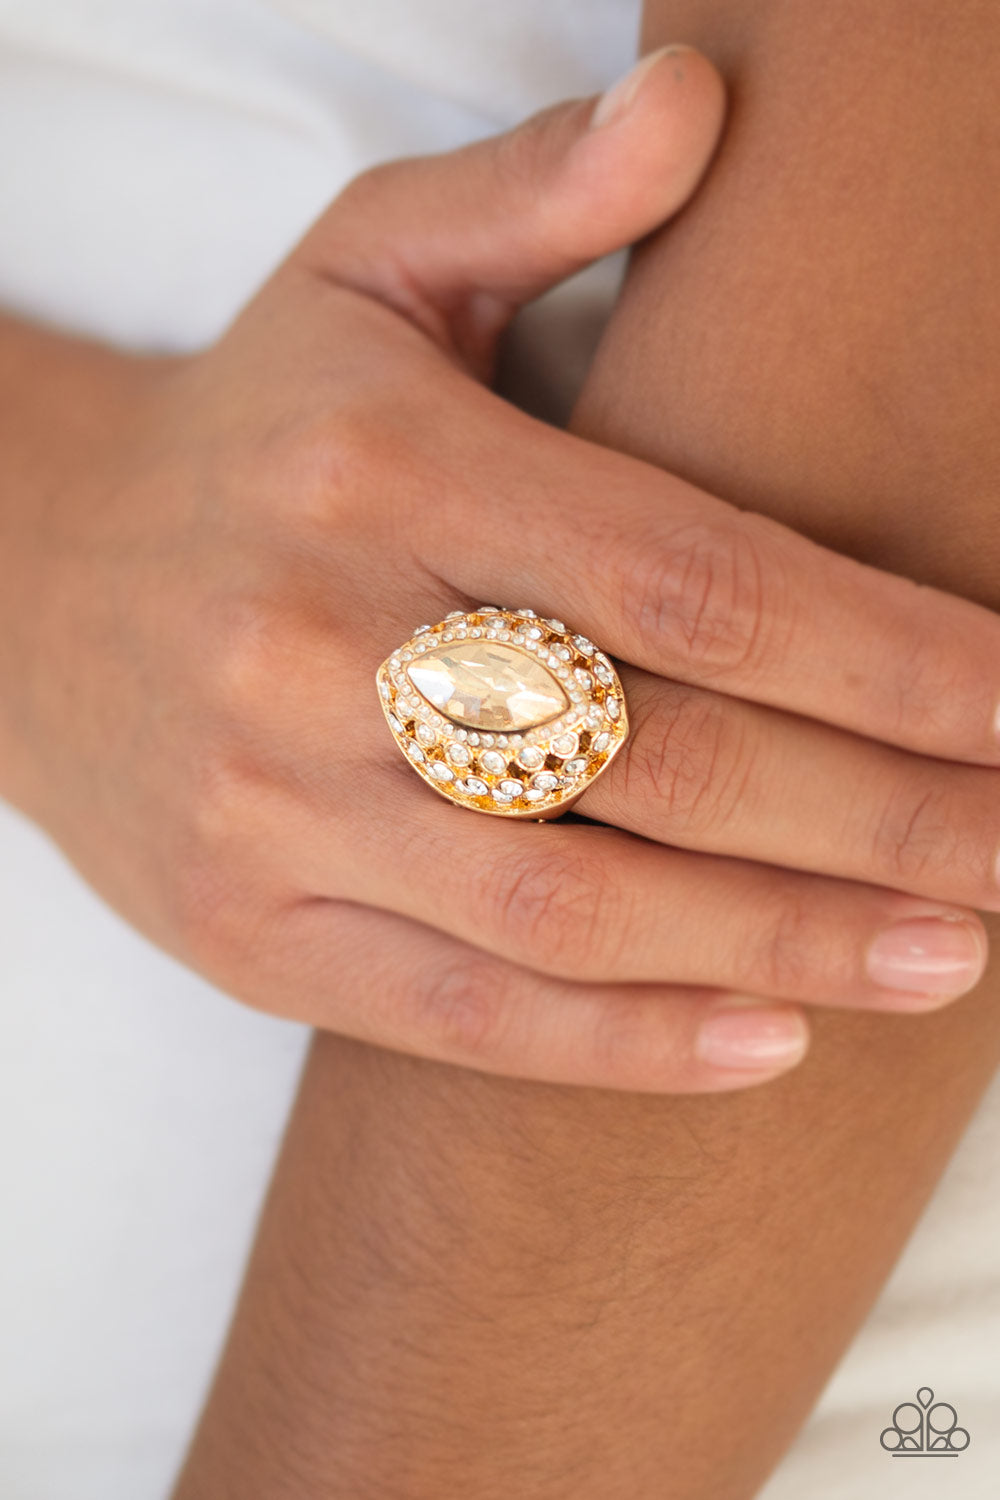 Paparazzi - Royal Radiance - Gold Ring - Classy Jewels by Linda